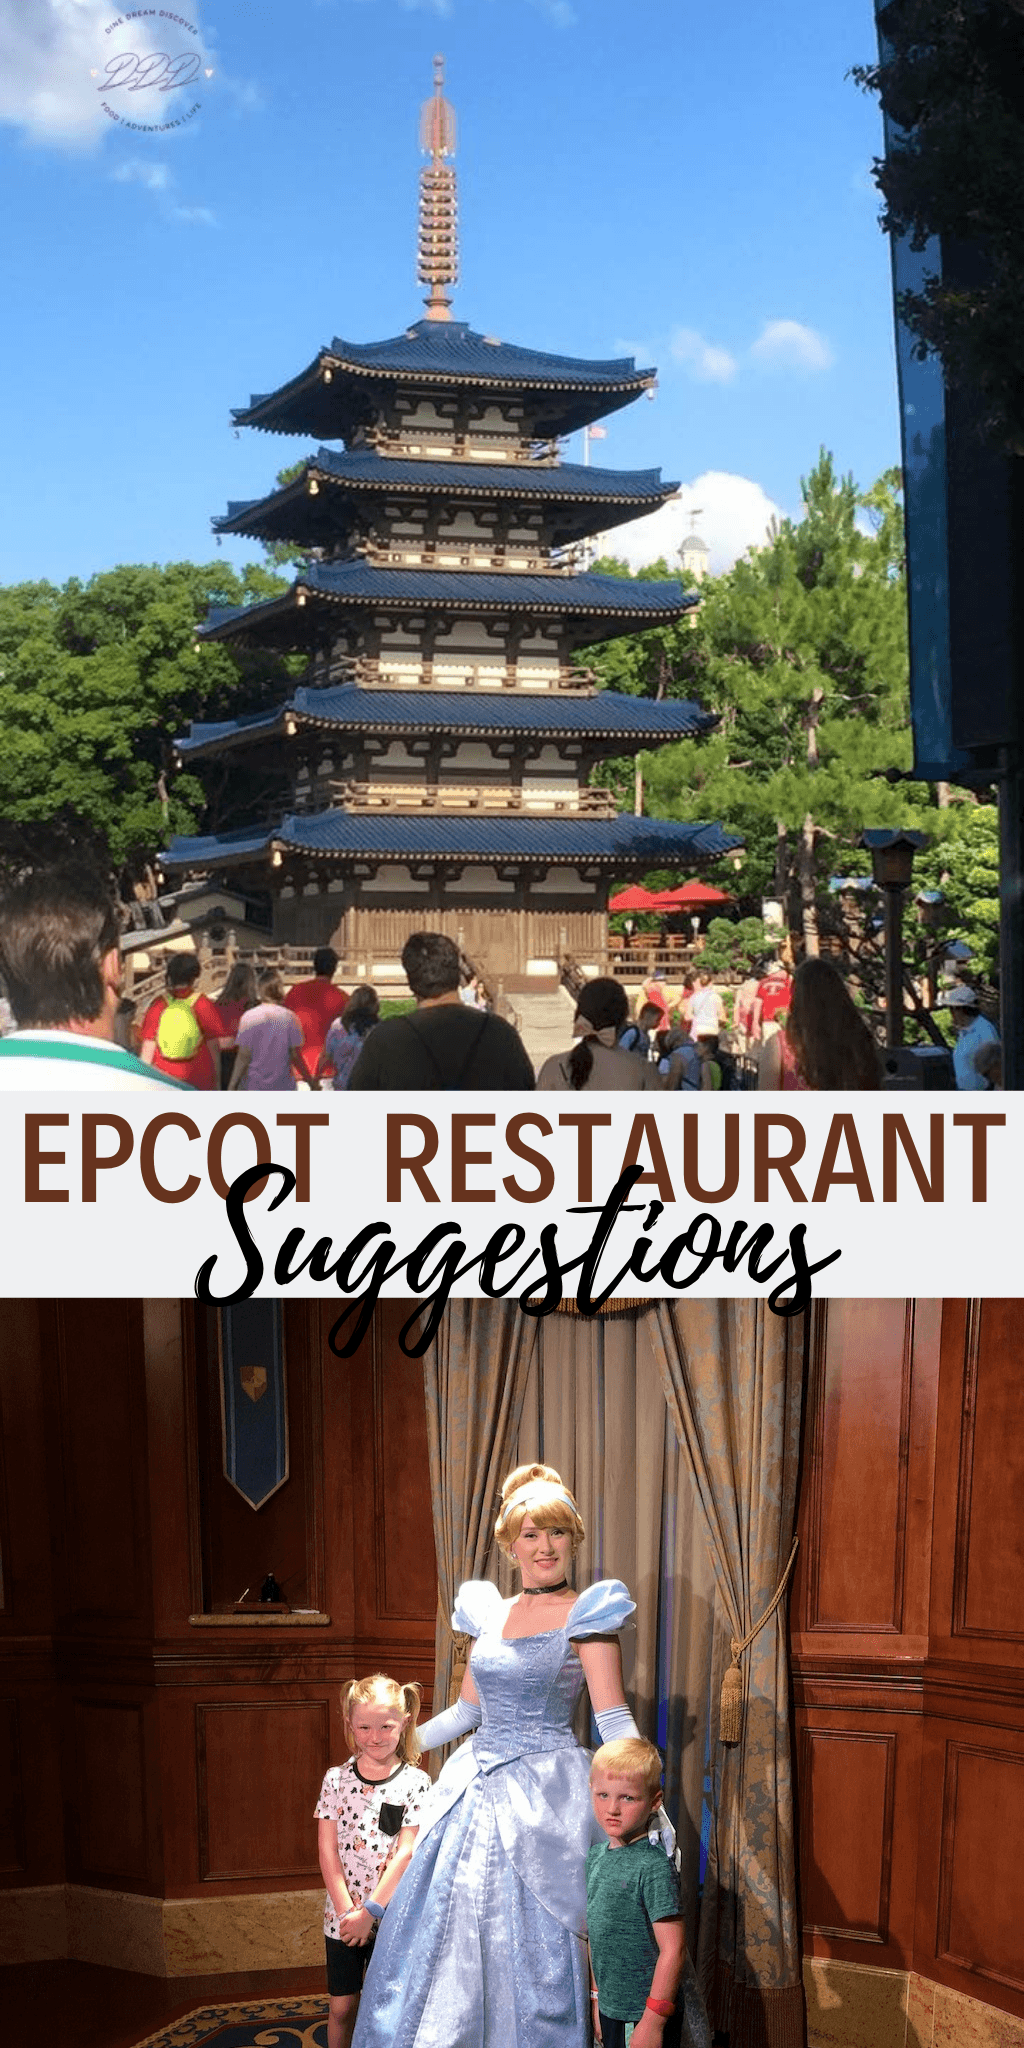 Based on the path you might map out for yourself, here are some Epcot restaurant suggestions for meals throughout your day.